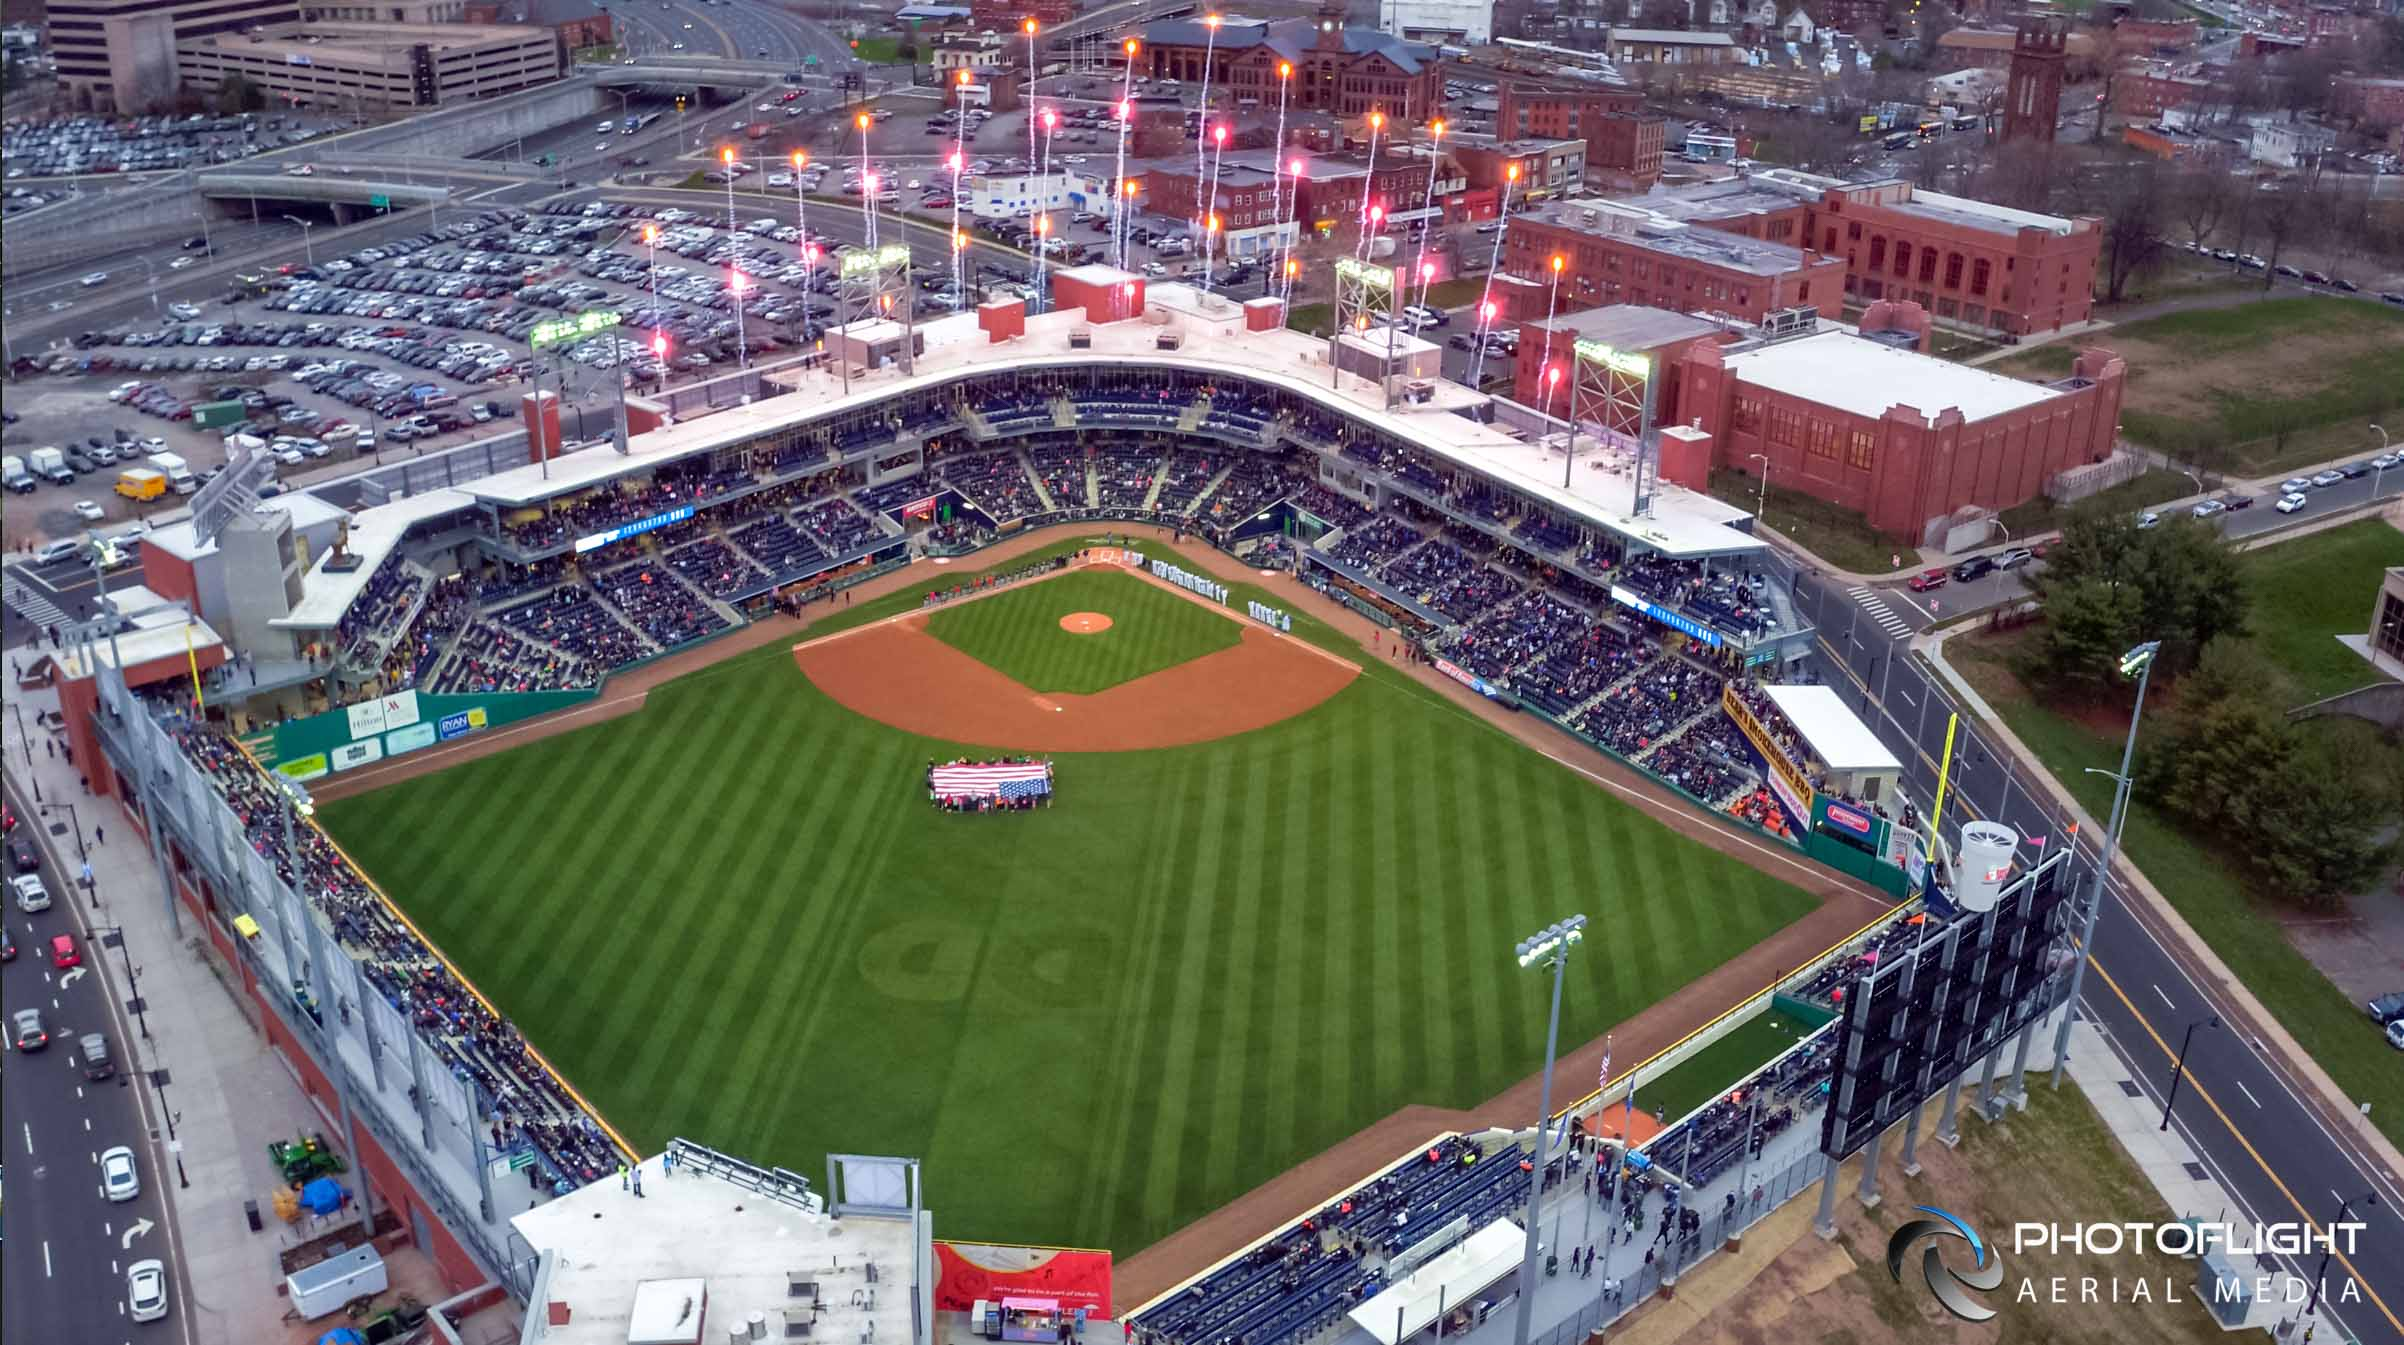 Live News Drone Coverage of Hartford Yard Goats Opening Game